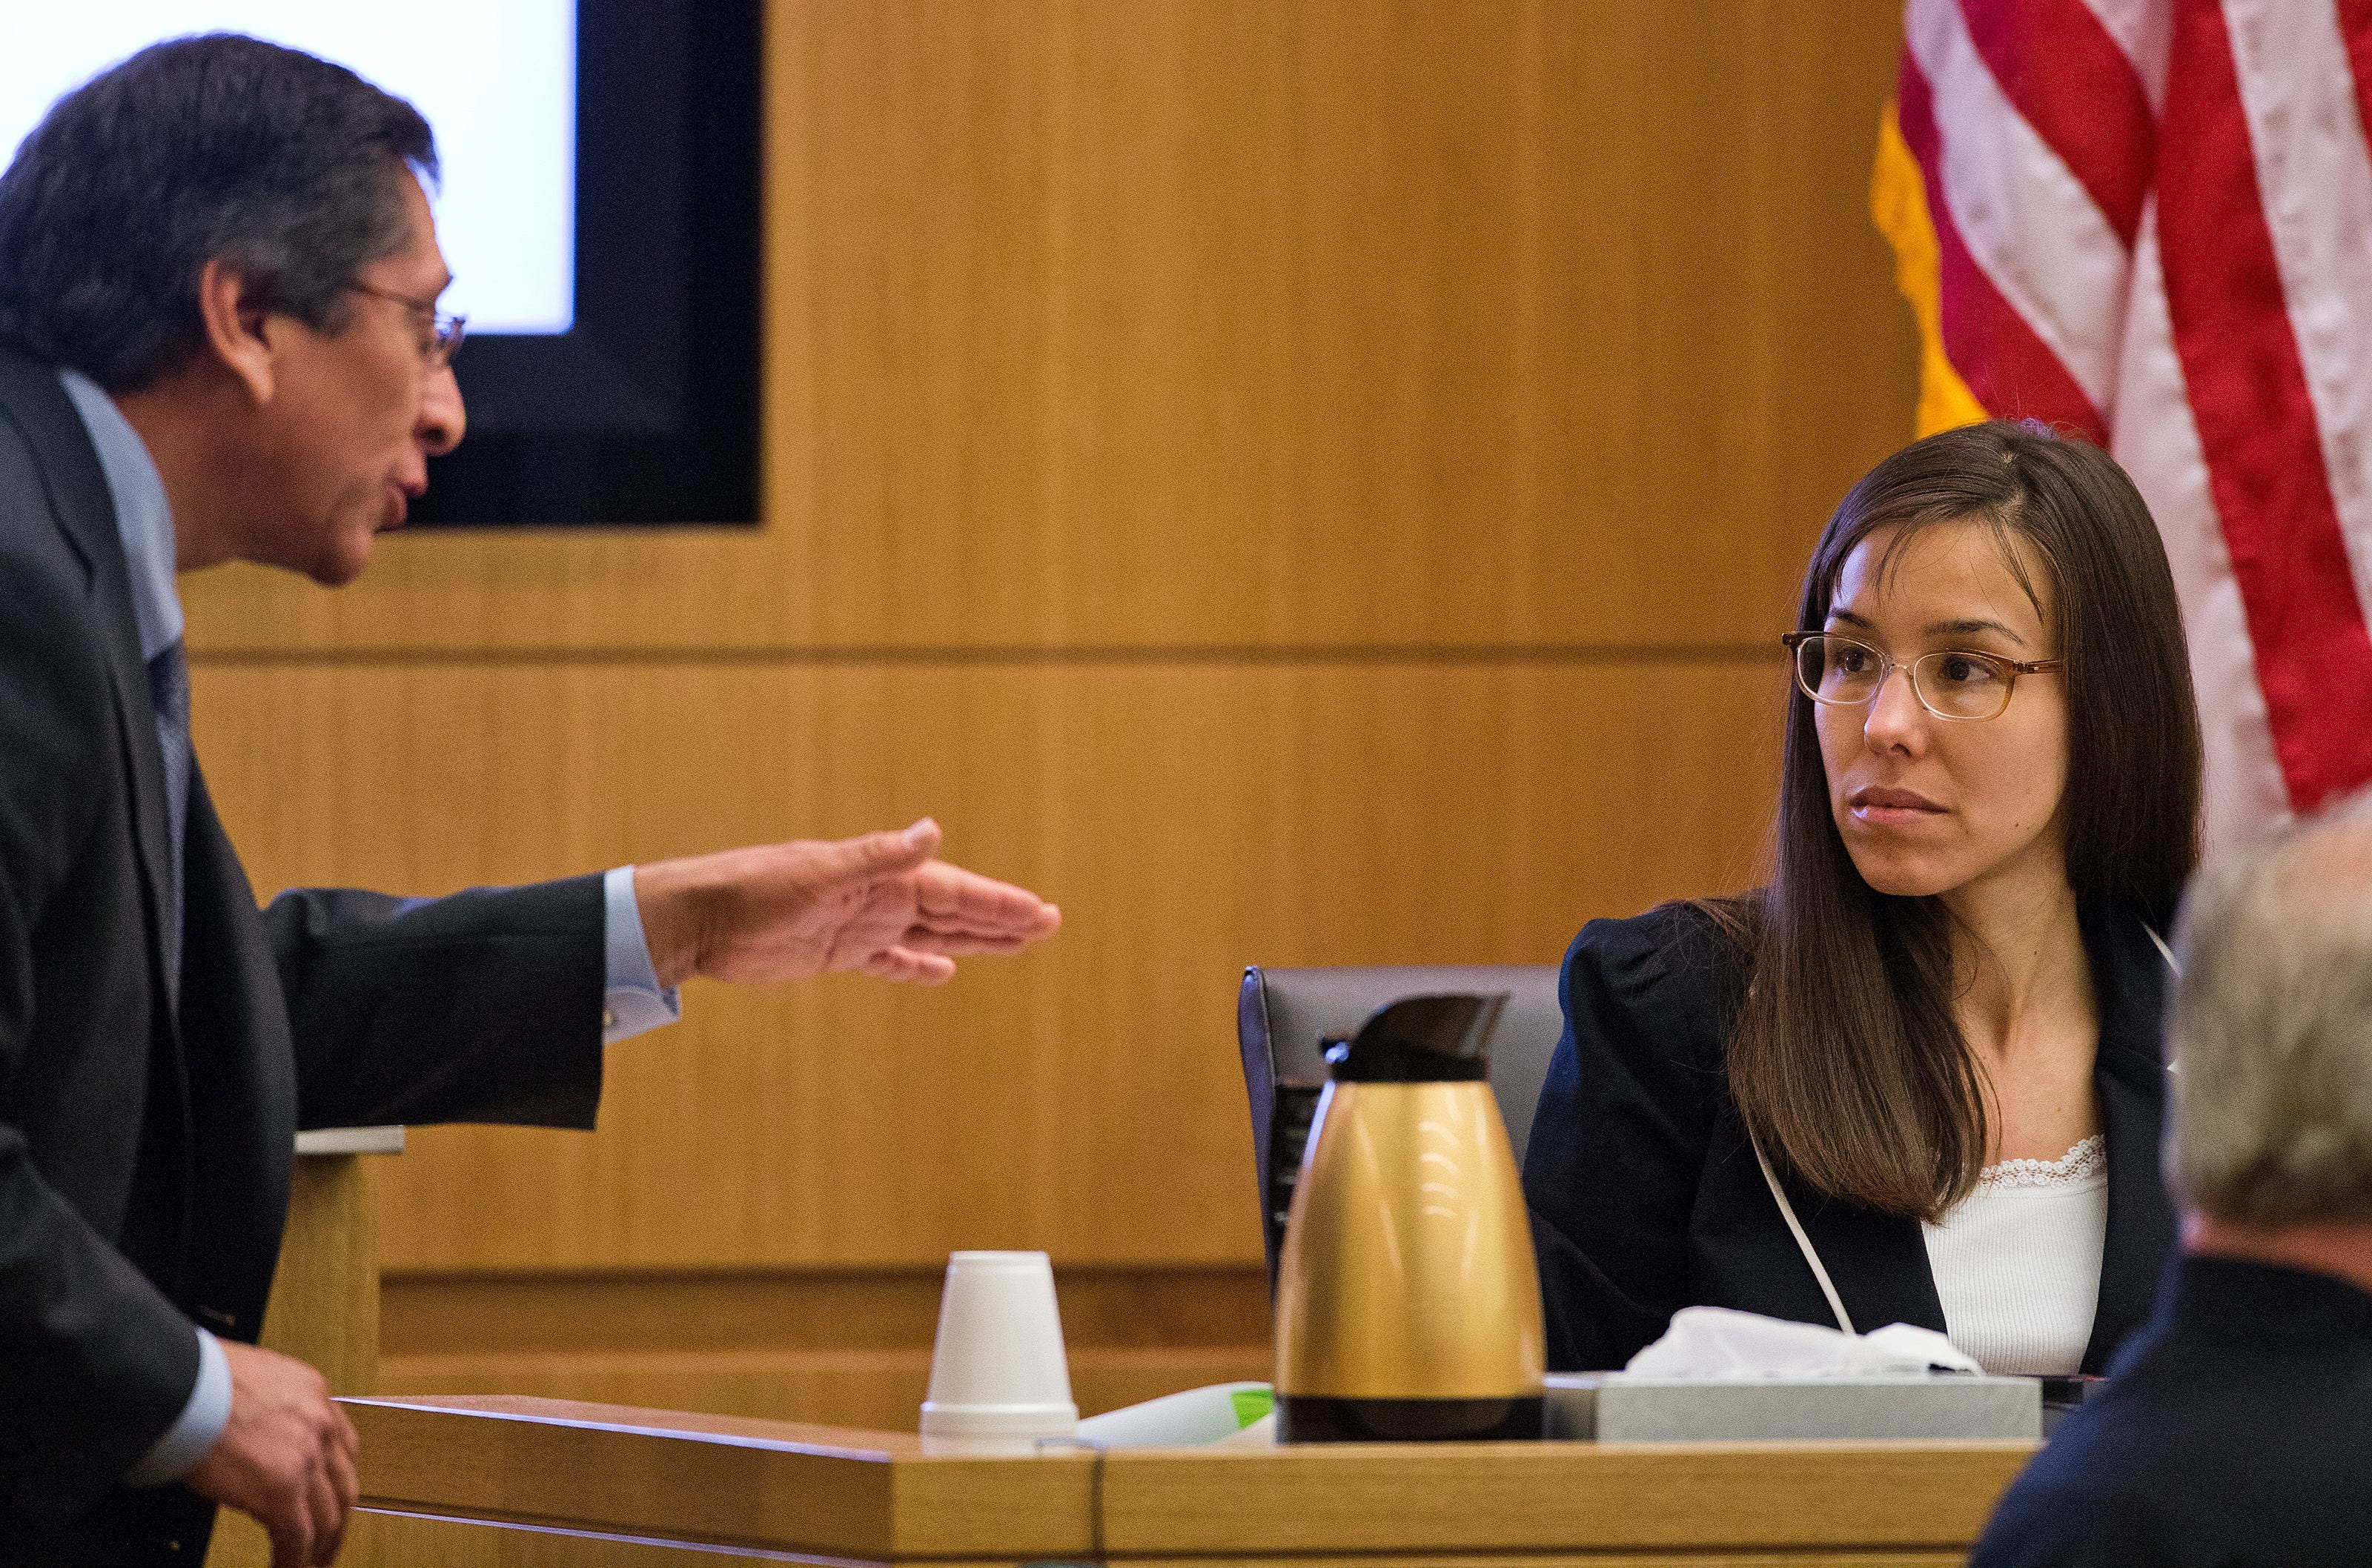 Prosecutor Juan Martinez became an international celebrity during Jodi Arias' trials, but it also put his conduct in the spotlight.